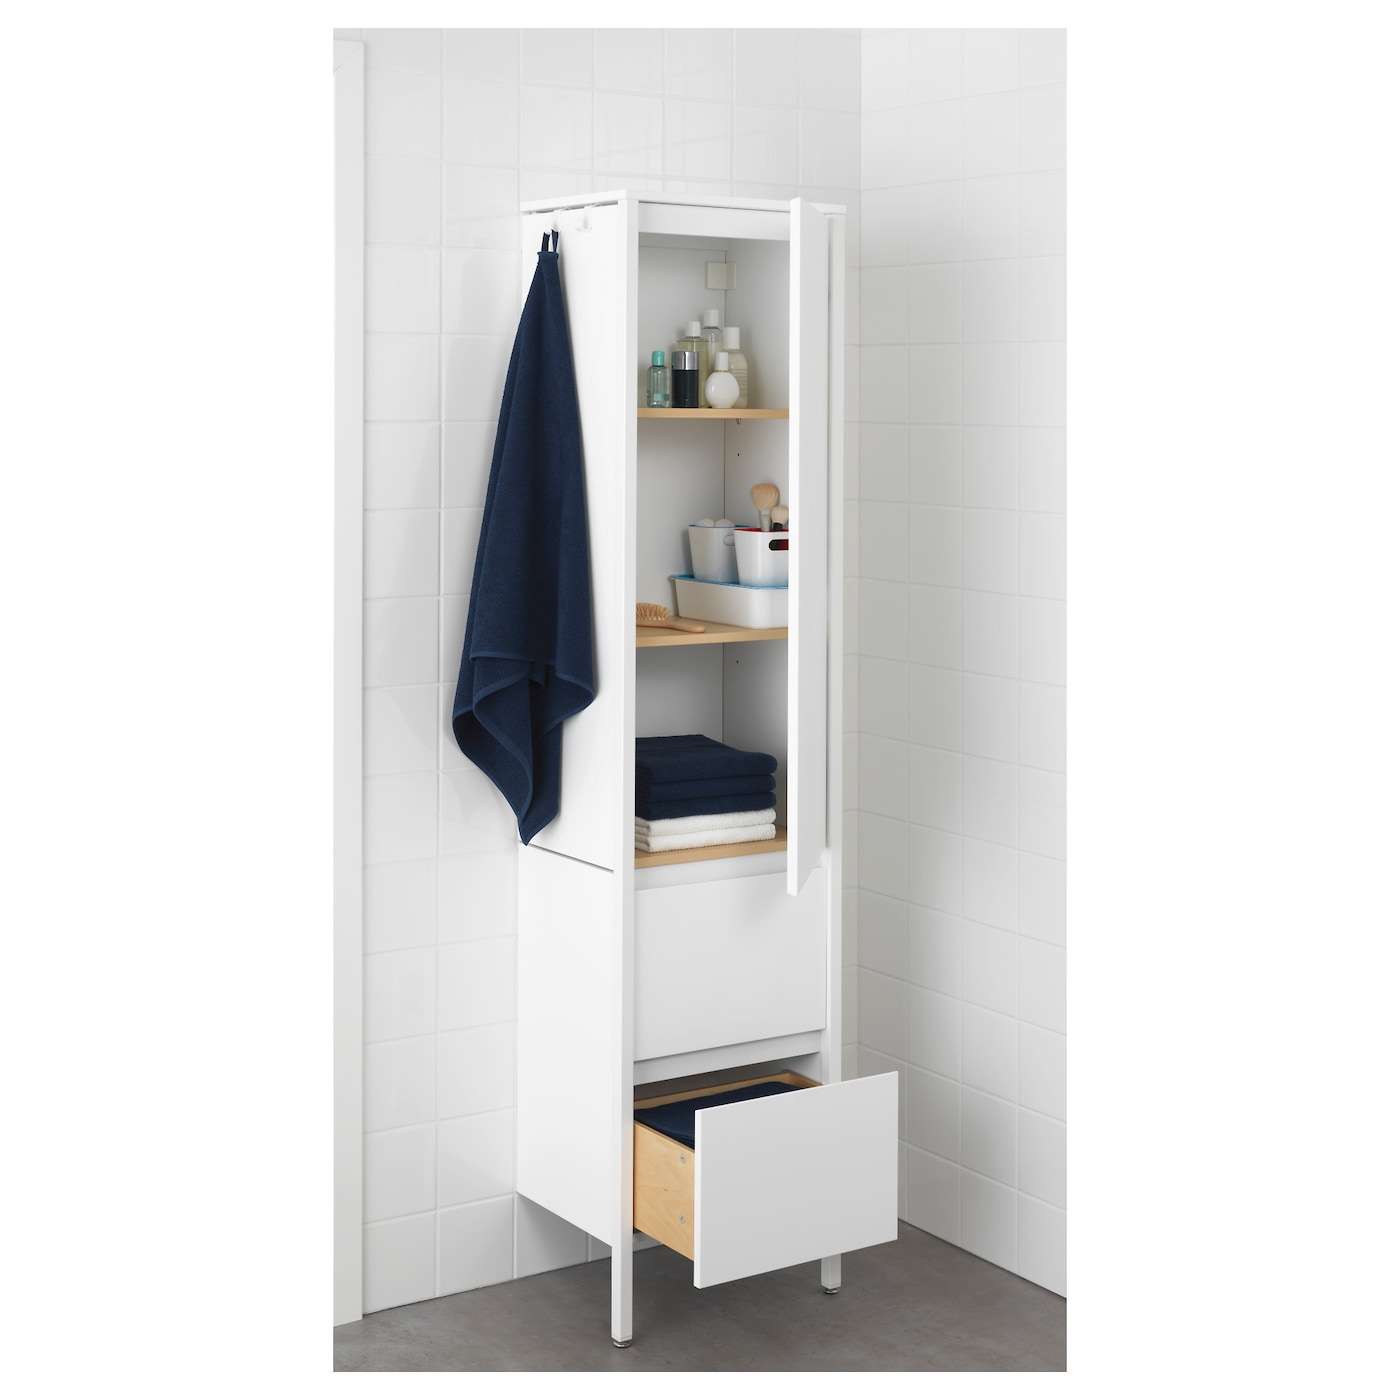 Yddingen high cabinet white 45x189 cm ikea for Asciugamani ikea